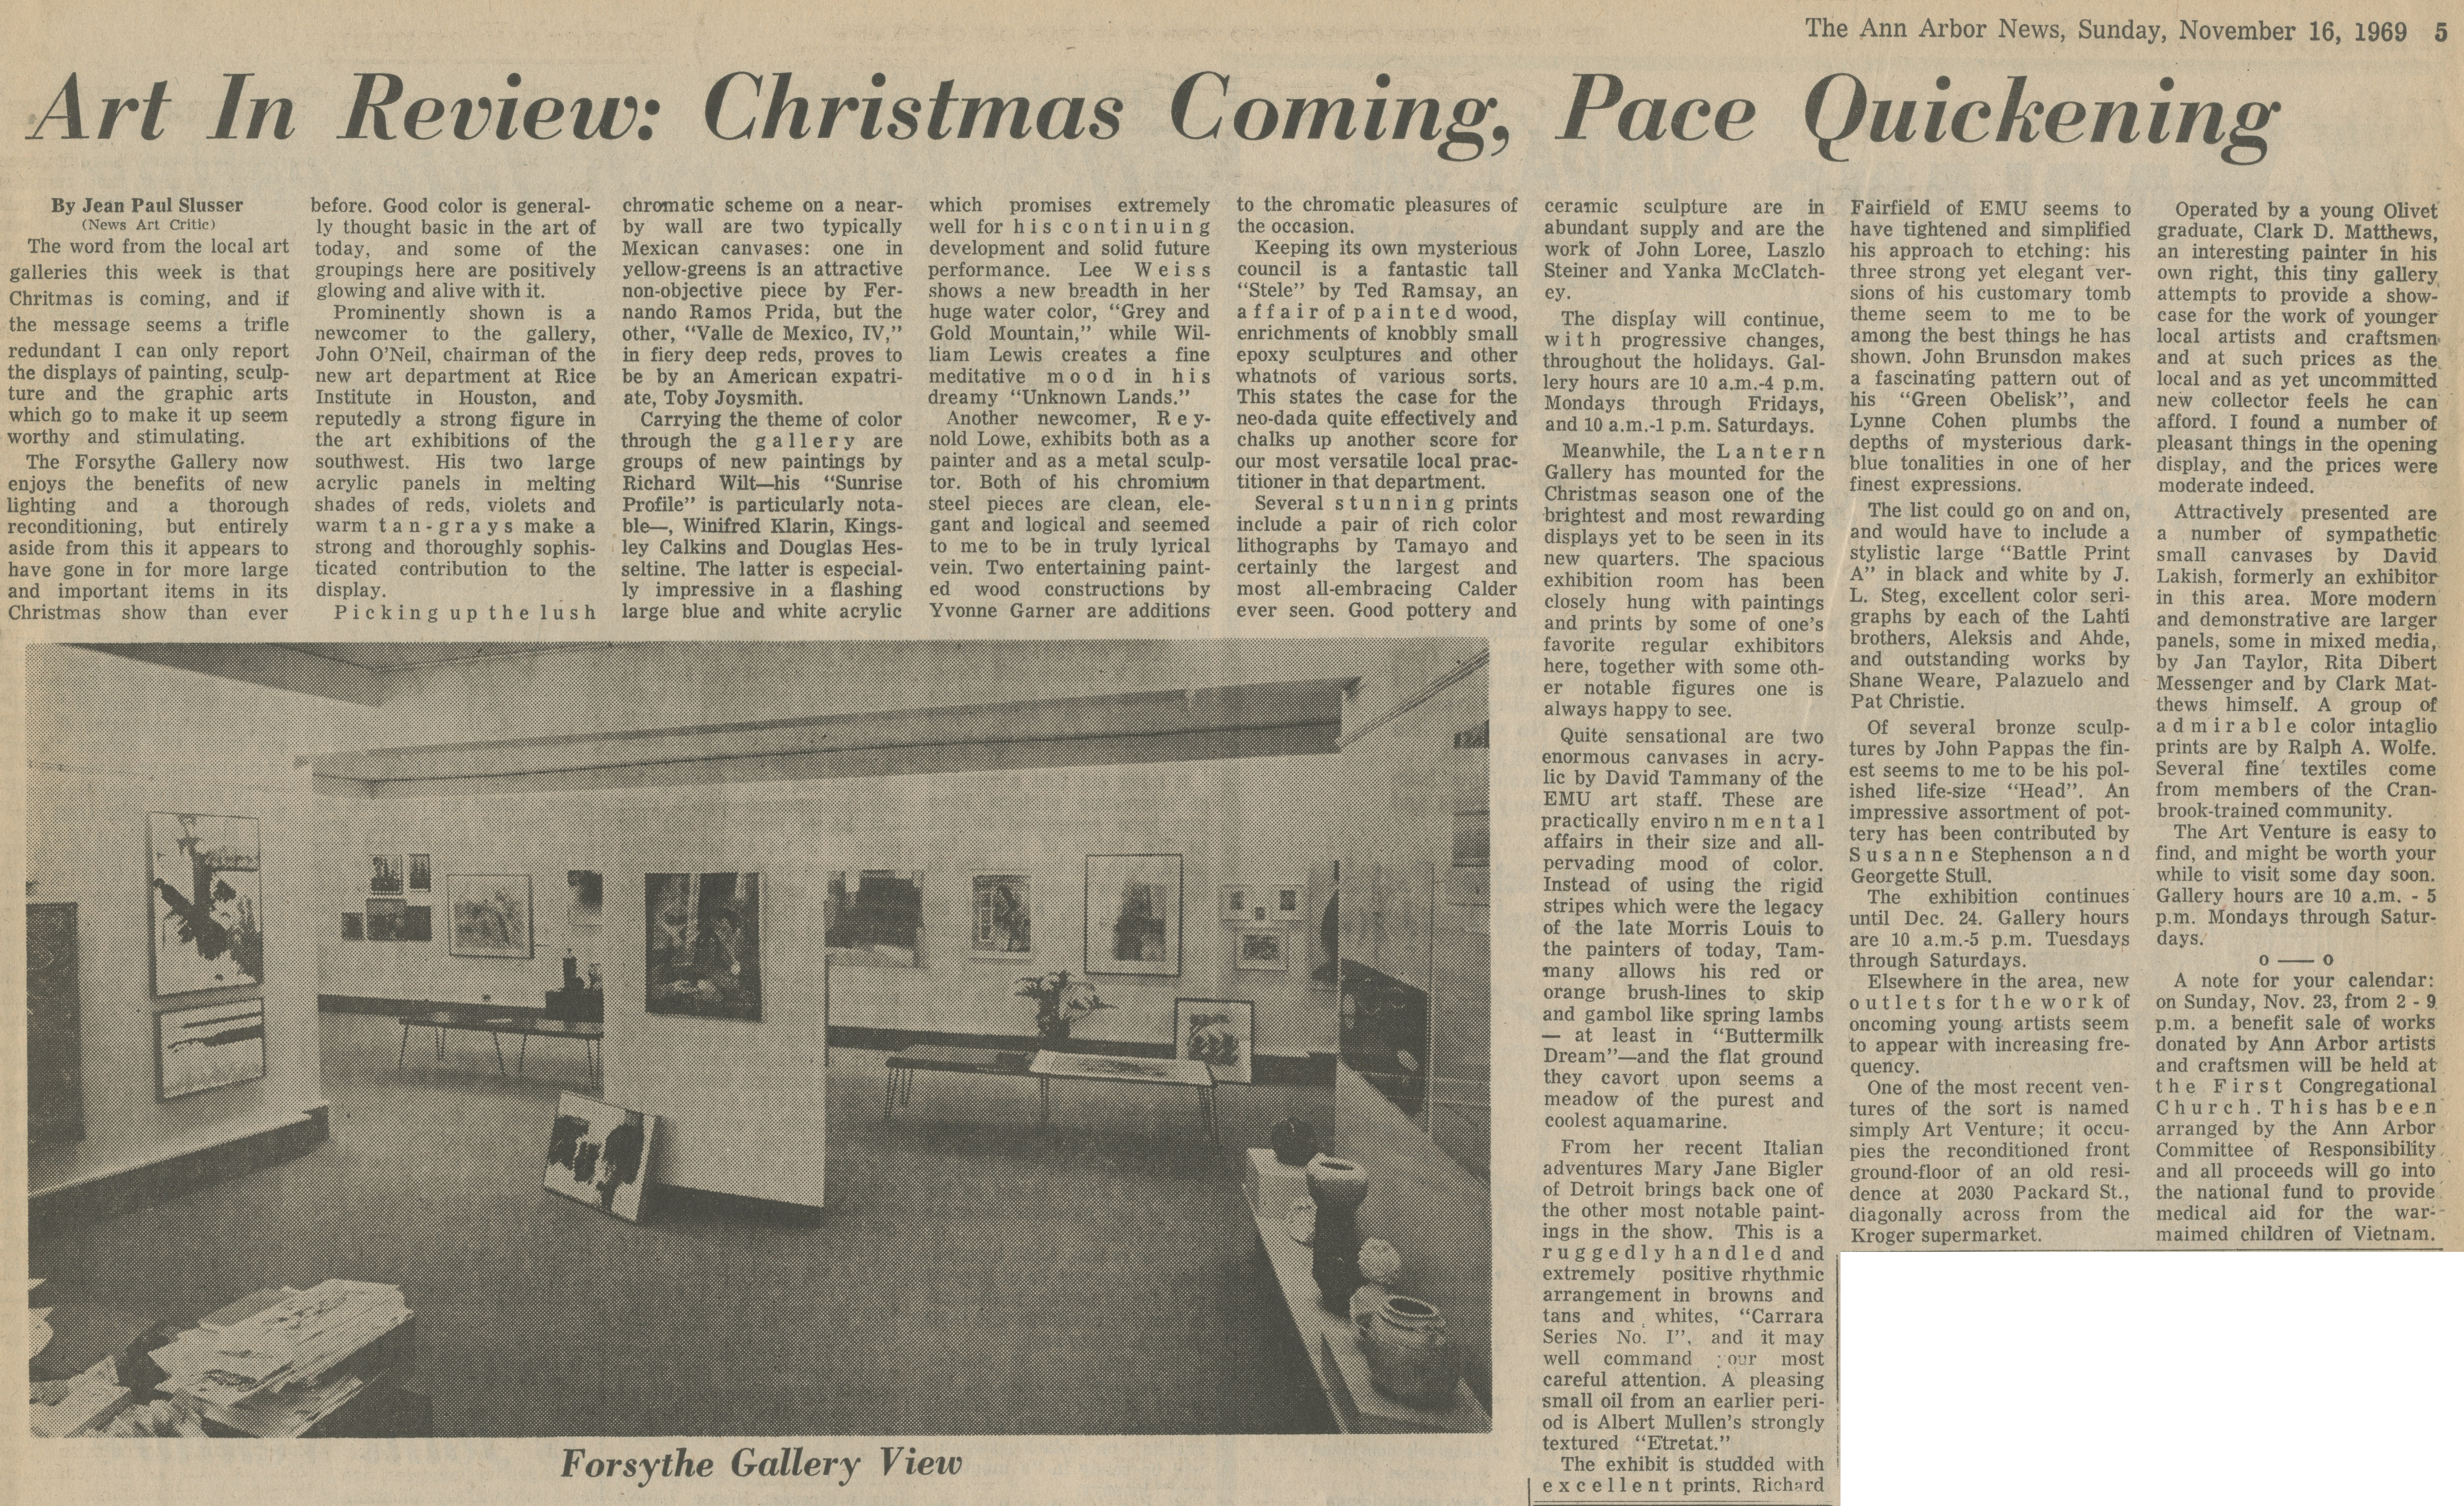 Art In Review:  Christmas Coming, Pace Quickening image